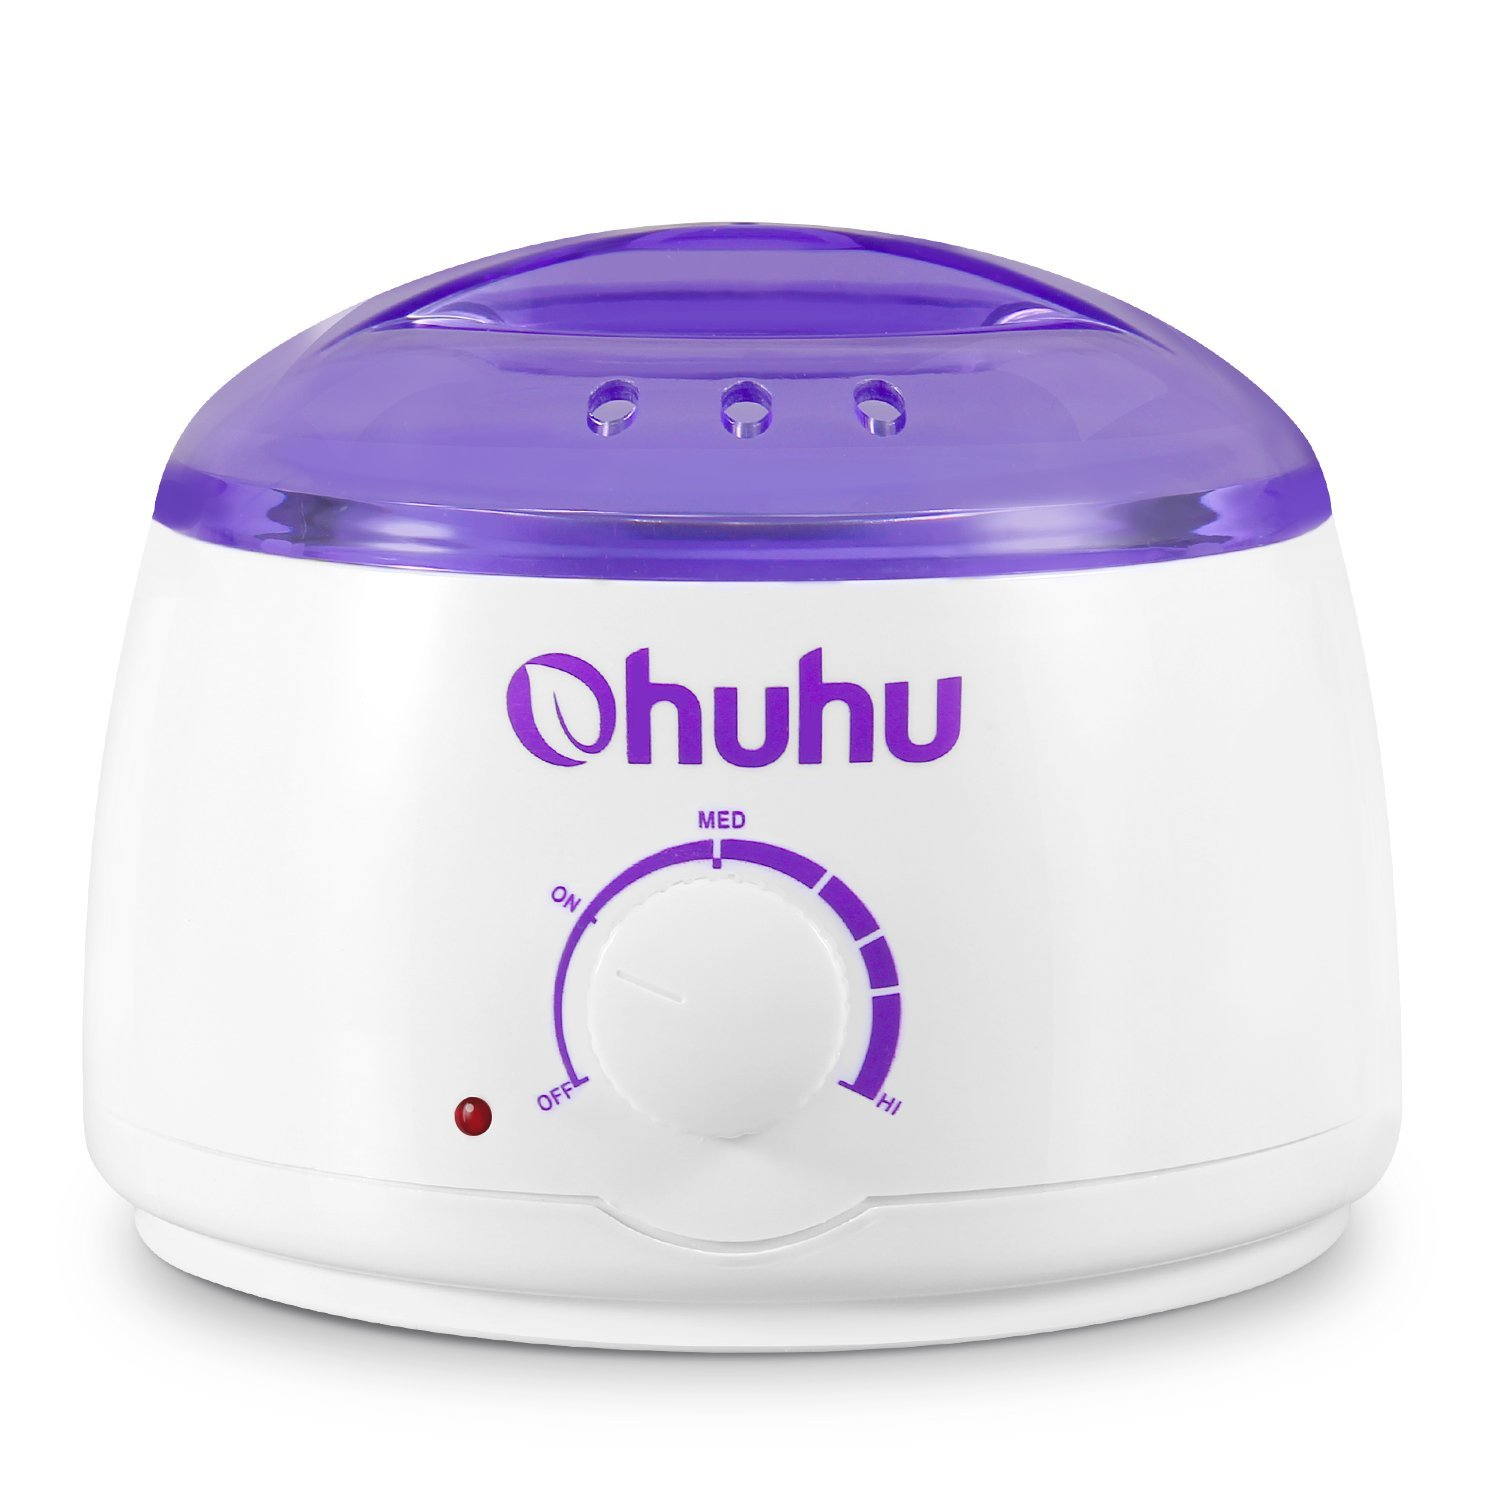 Hot Wax Warmer, Ohuhu Electric Wax Warmer Melting Pot for Facial Skin Body Hand Foot Leg Hair Removal, Waxing Heater Pot Machine for Other Therapeutic Waxes, Paraffin